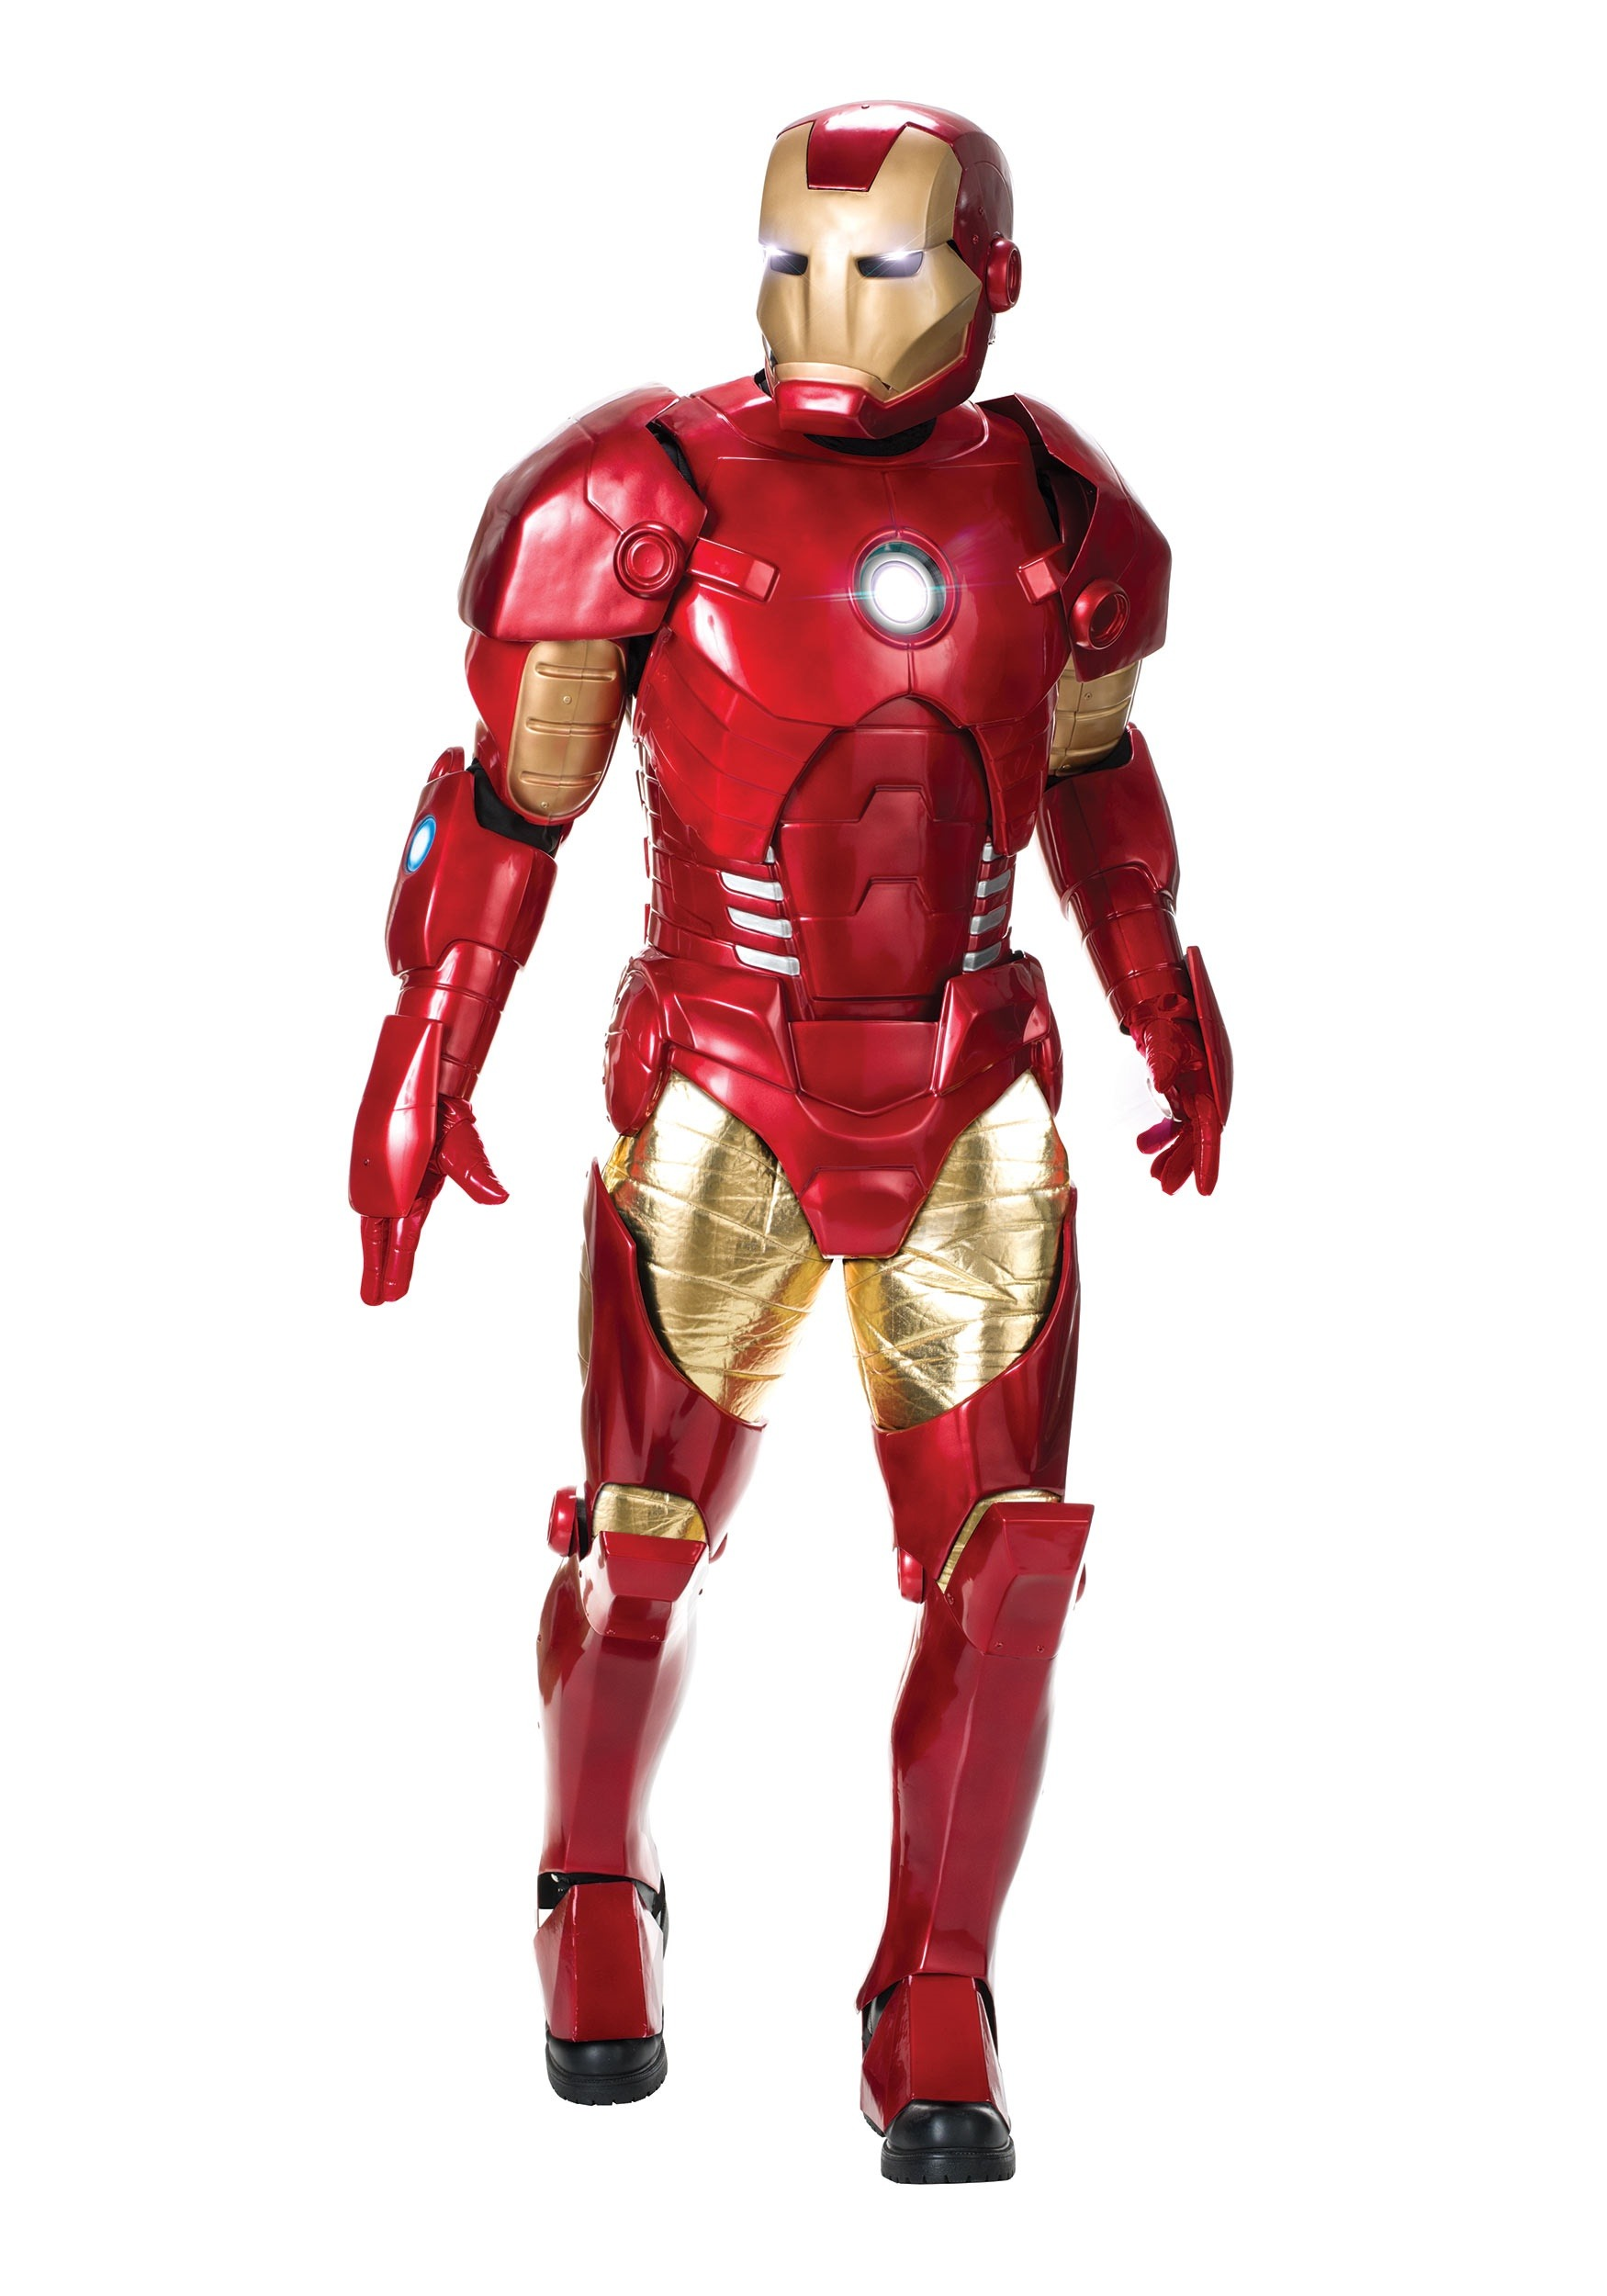 Shop for officially licensed Iron Man costumes and accessories to transform you into the mighty superhero with an arc reactor in his chest.